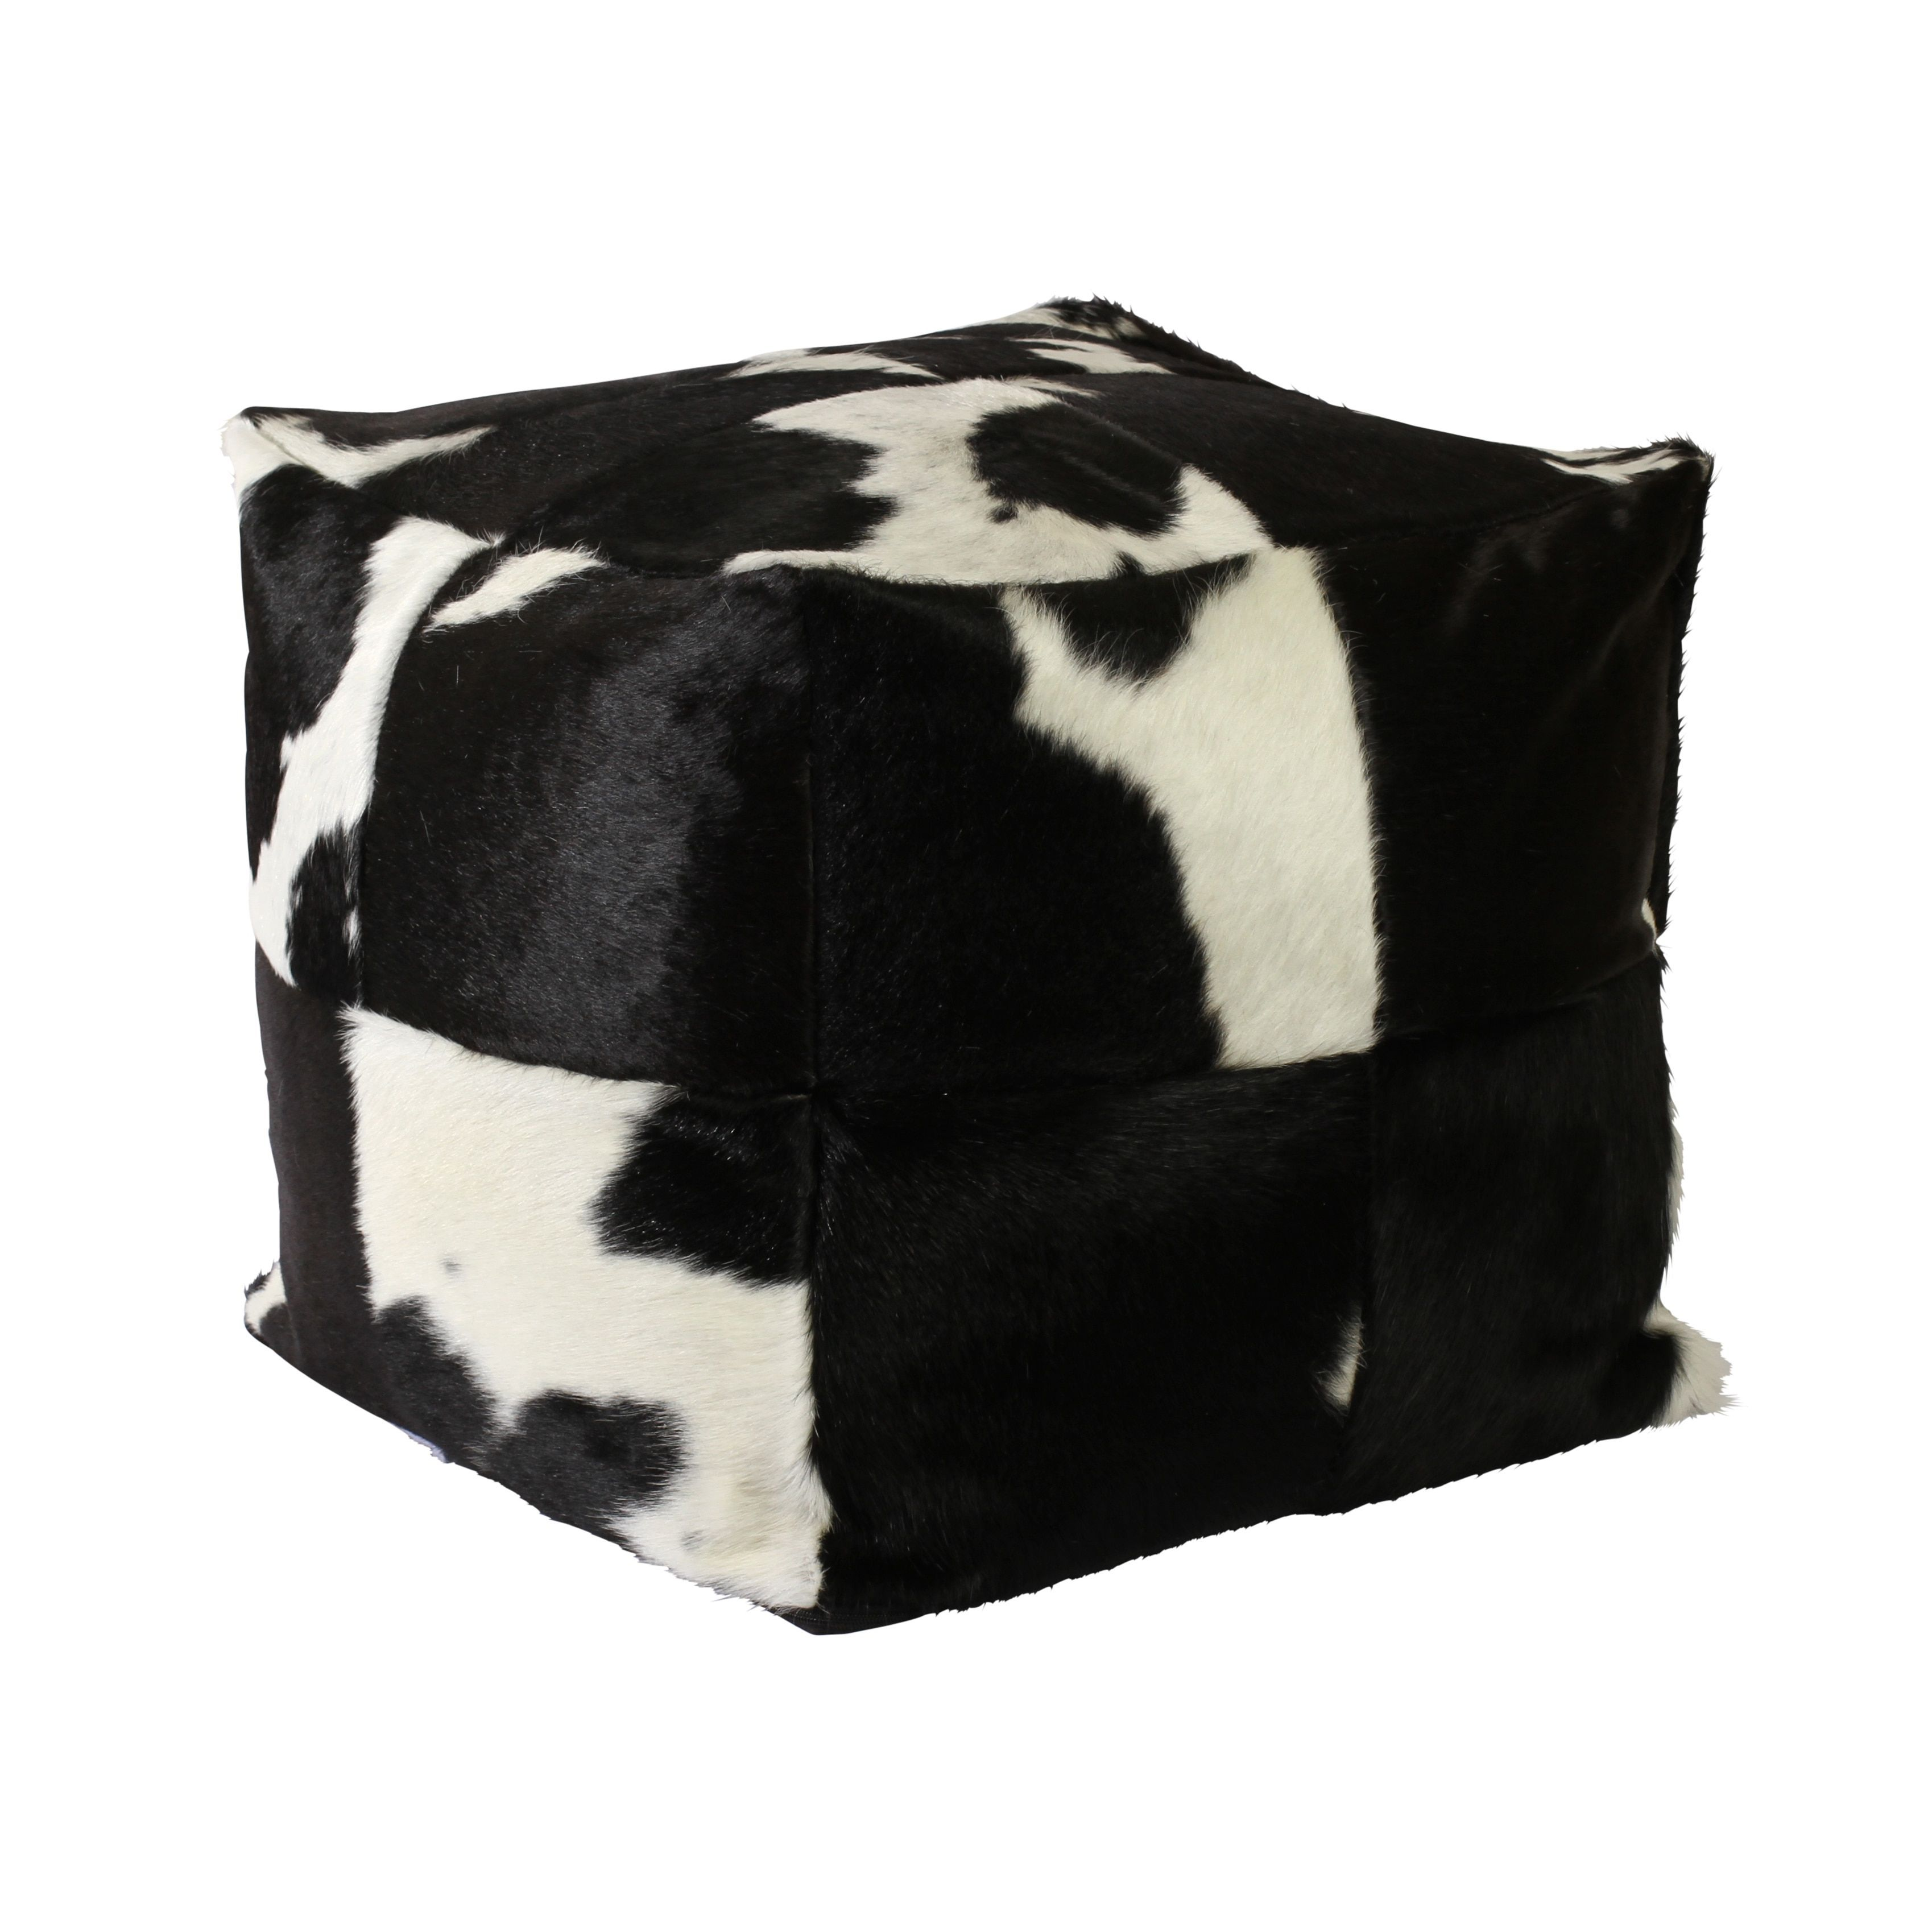 Bring a cowboy or western touch to your home decor with this cowhide pouf. Four cowhides are stitched together and filled with polystyrene beads for comfort when sitting. Pillow Shape: Square Material